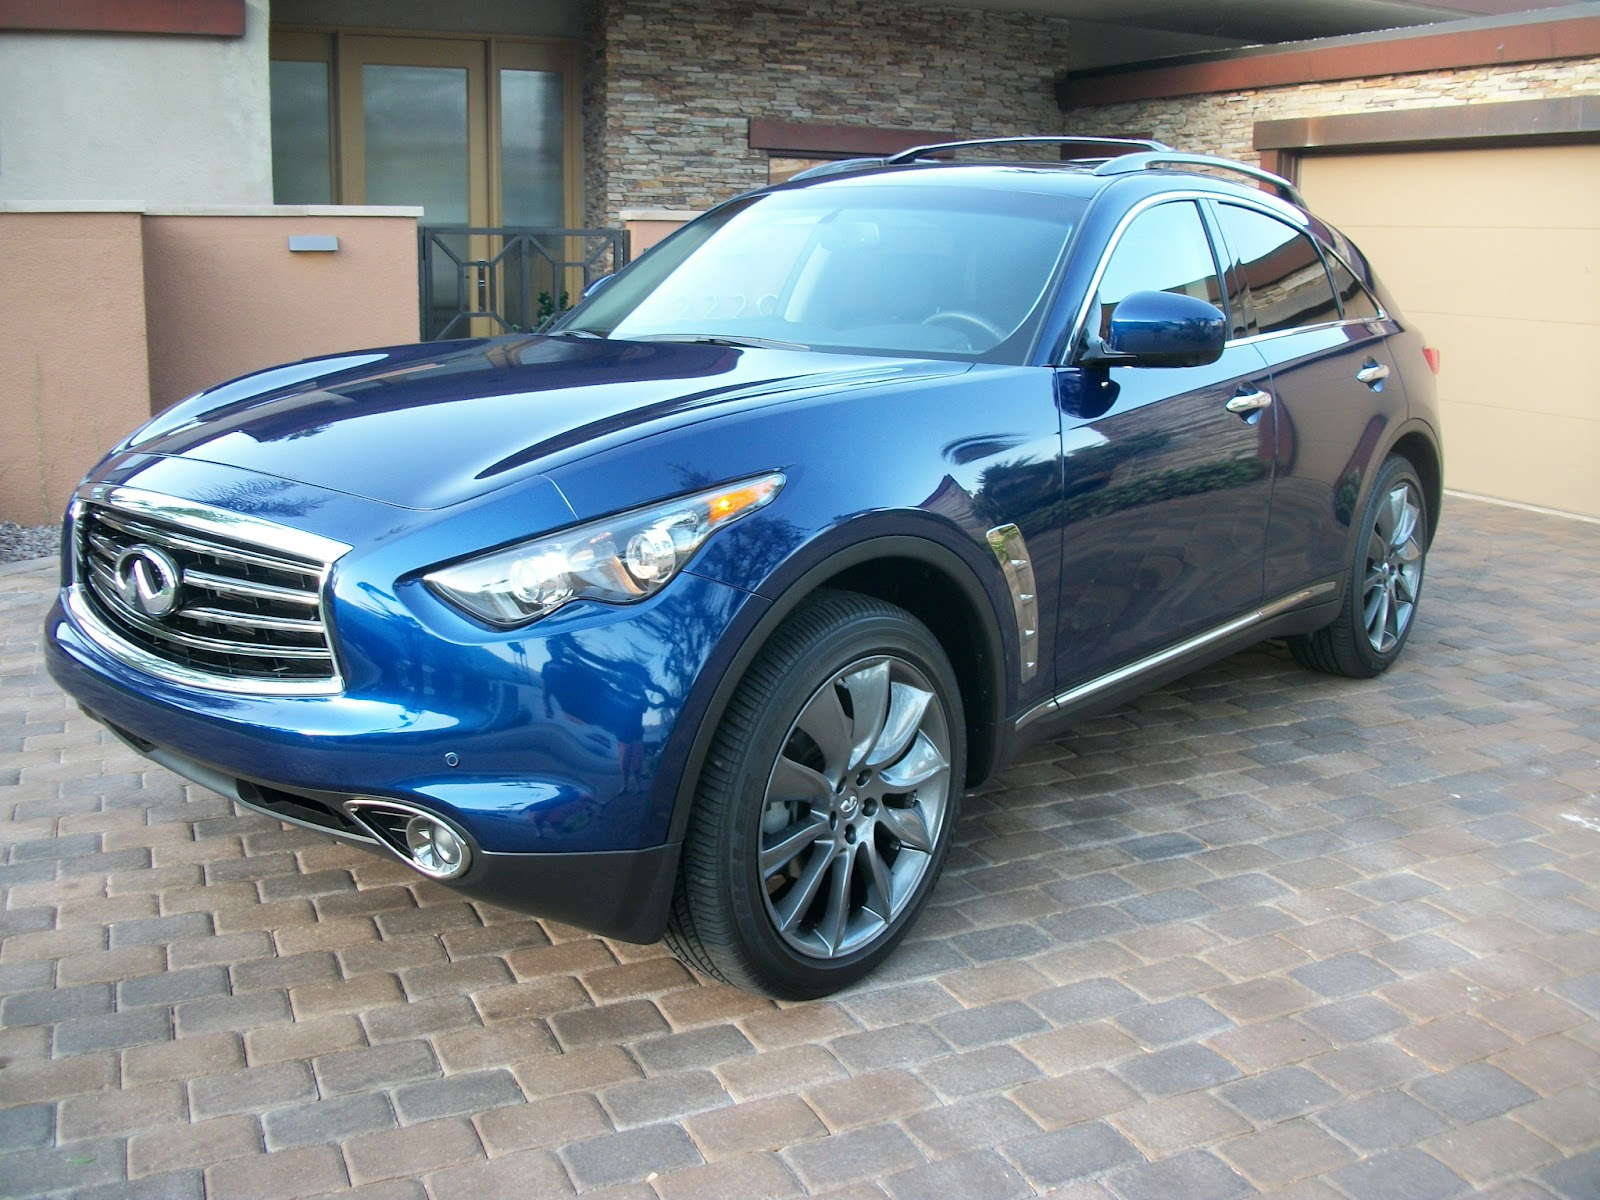 palm springs automobilist behind the wheel 2012 infiniti fx35 awd limited edition tell jaguar. Black Bedroom Furniture Sets. Home Design Ideas